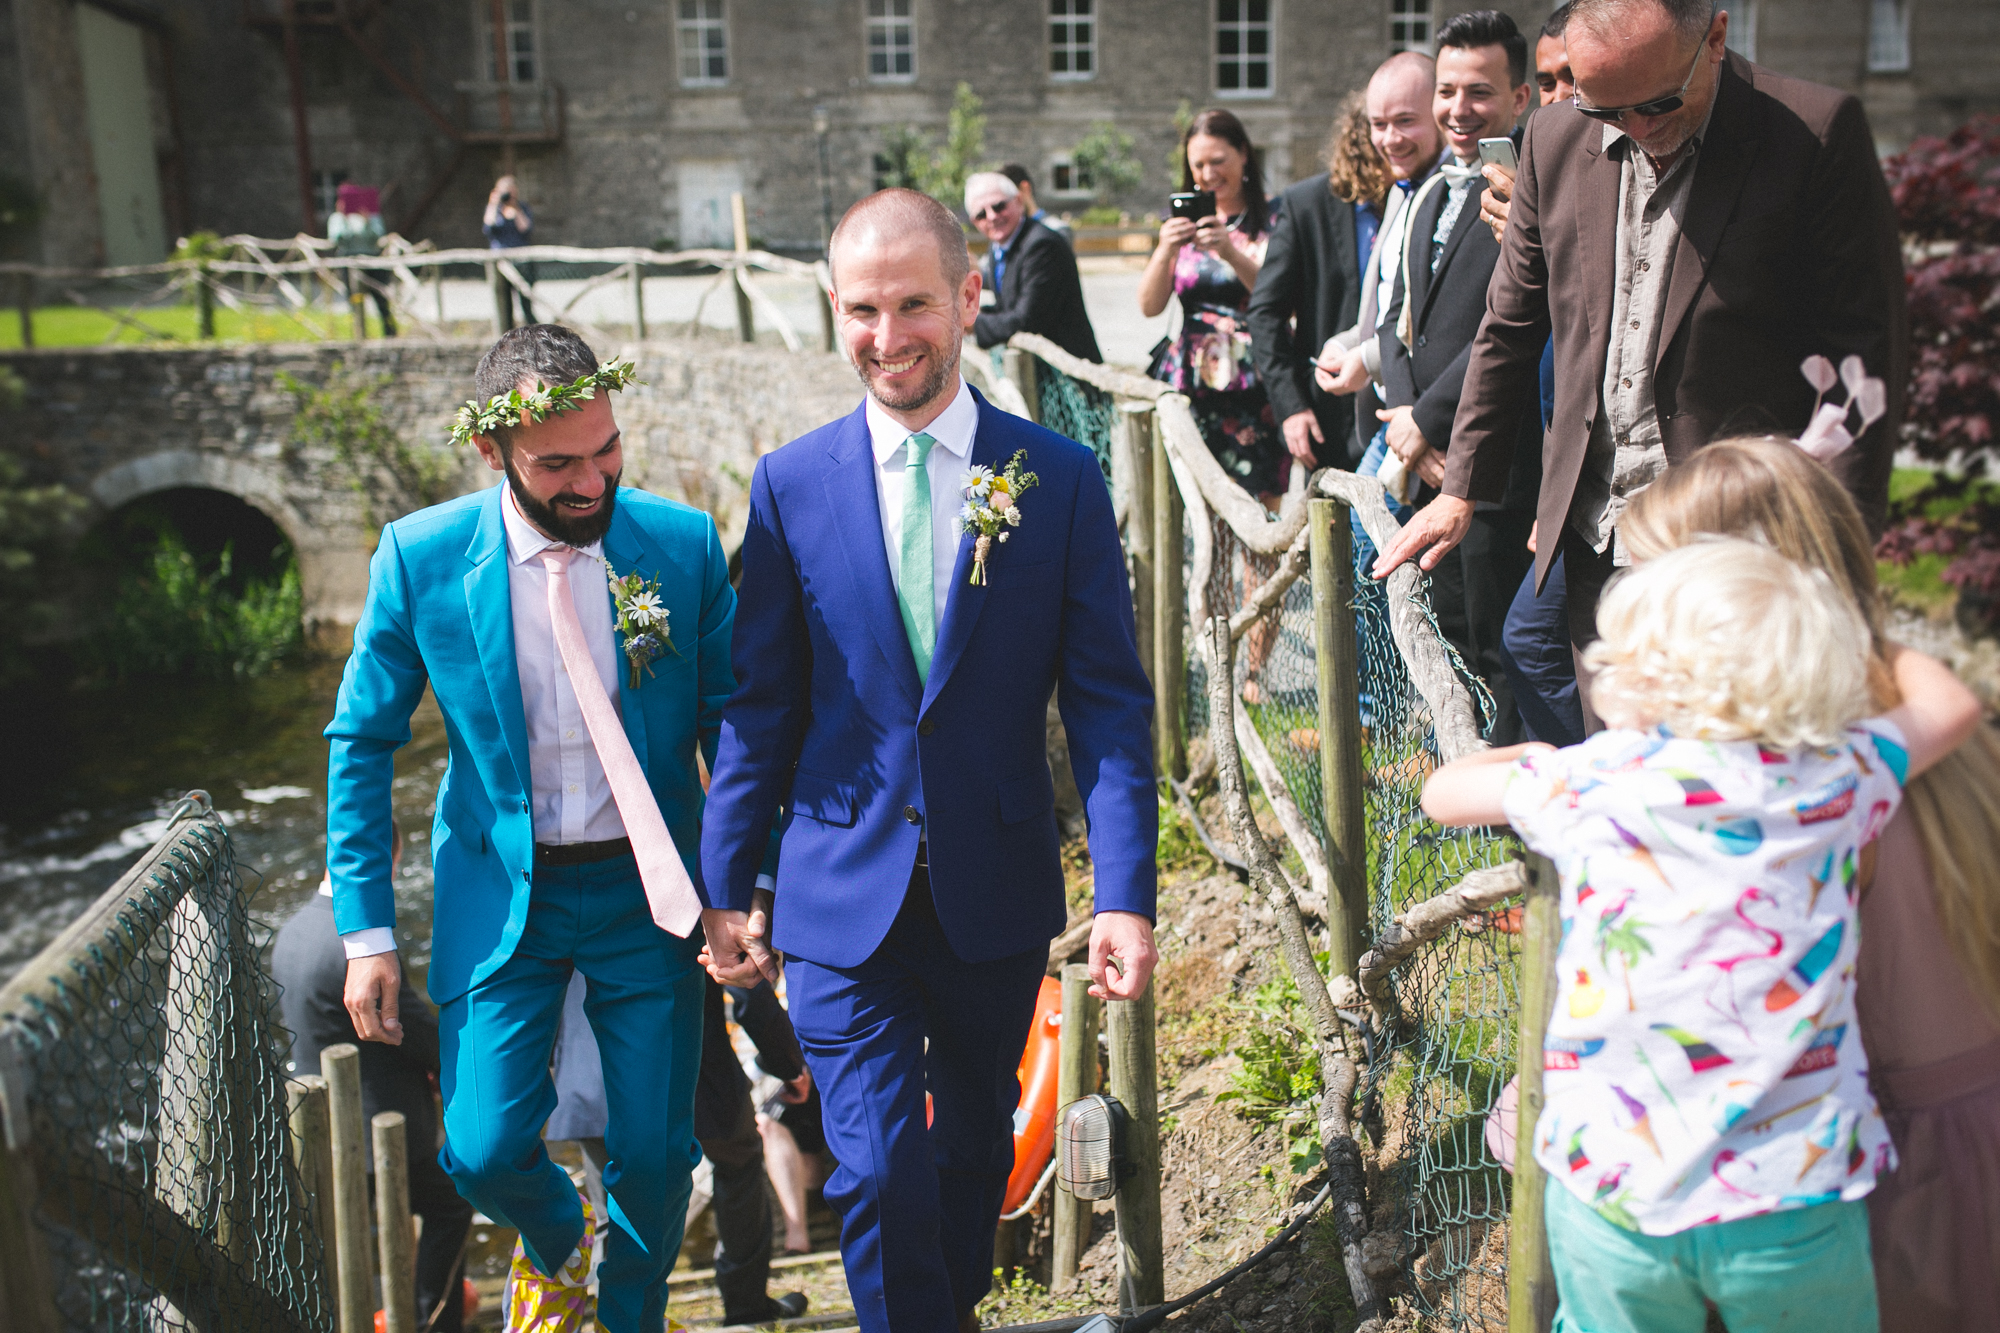 Gay weddings Ireland Millhouse-82.jpg